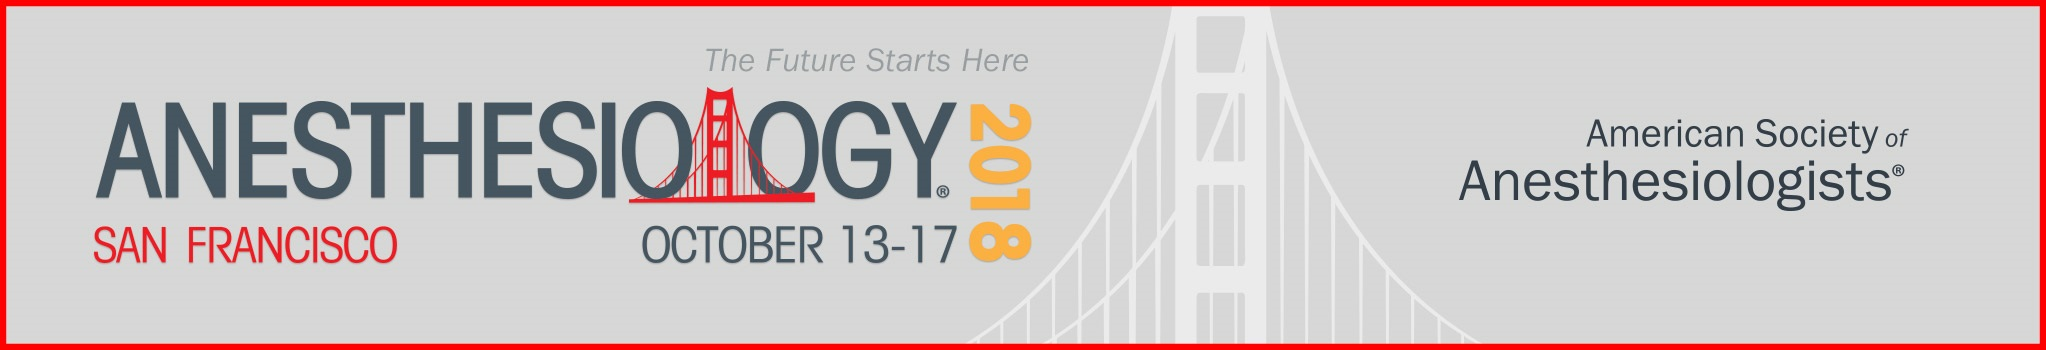 ANESTHESIOLOGY® 2018: Exhibitors